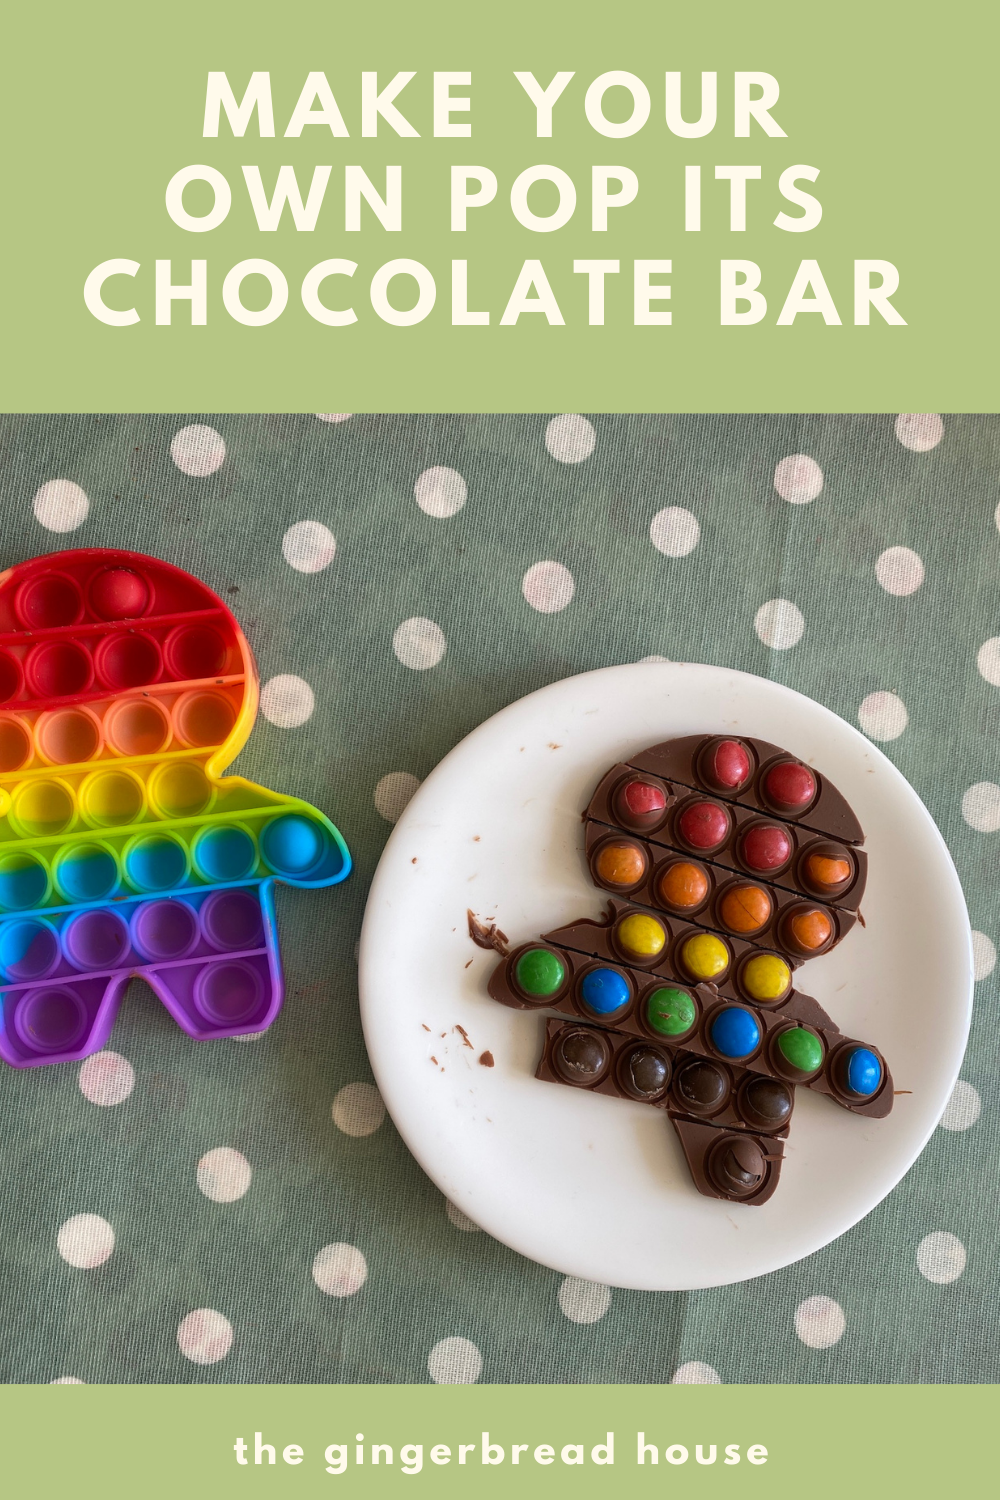 Make your own Pop Its chocolate bar